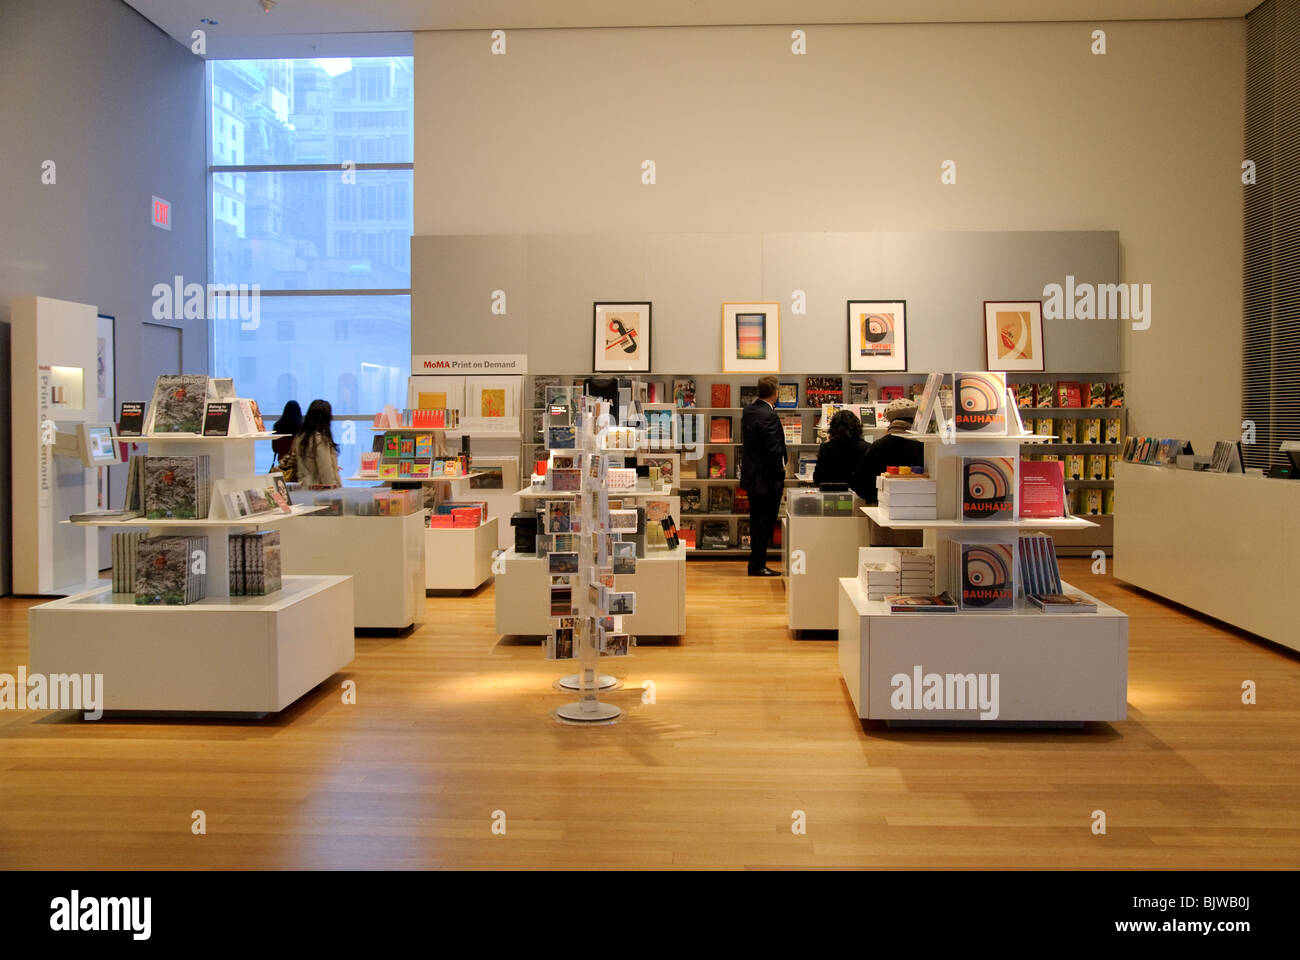 moma museum of modern art book shop new york city stock photo 28831618 alamy. Black Bedroom Furniture Sets. Home Design Ideas